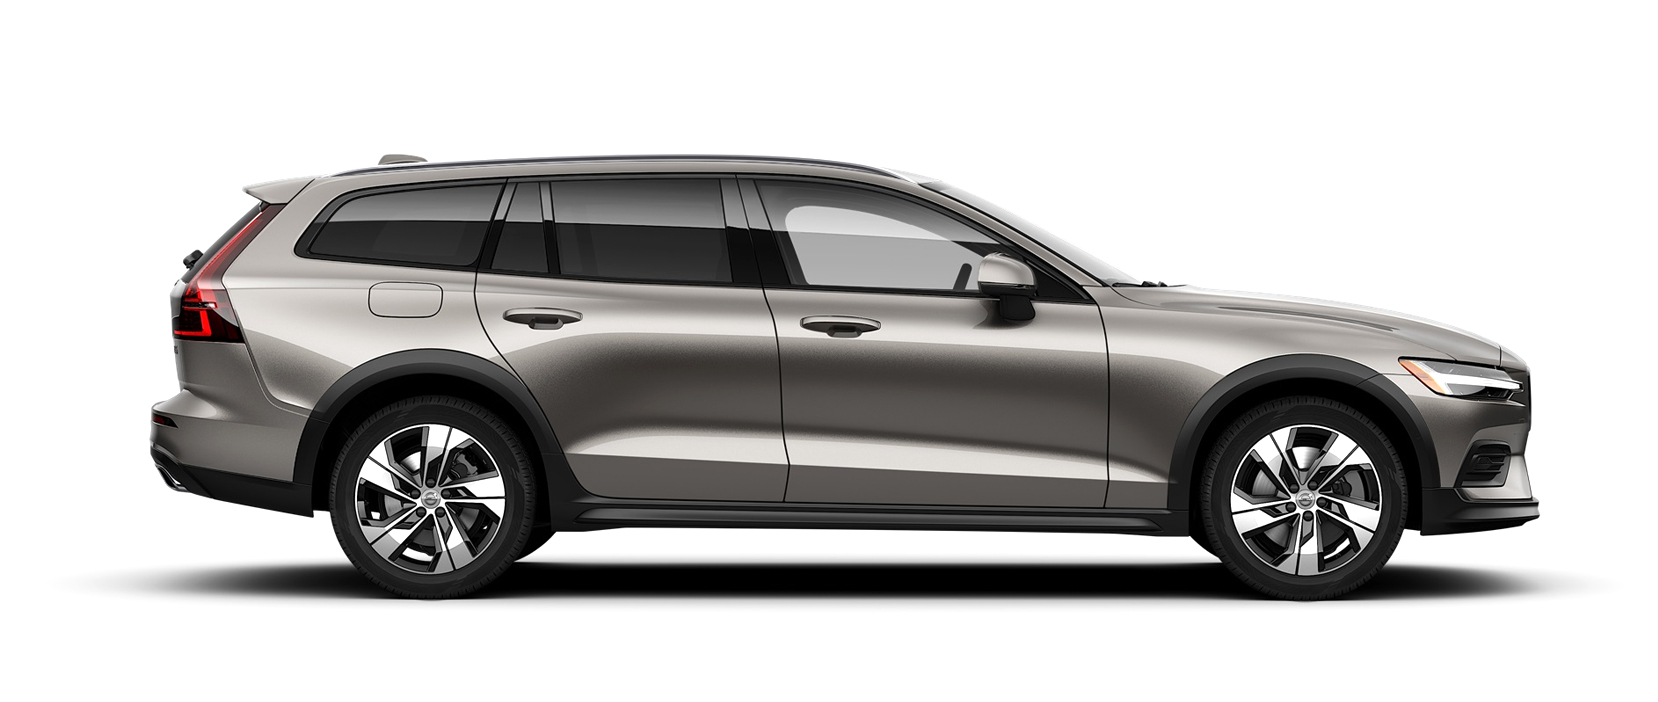 2020 Volvo V60 Cross Country shown